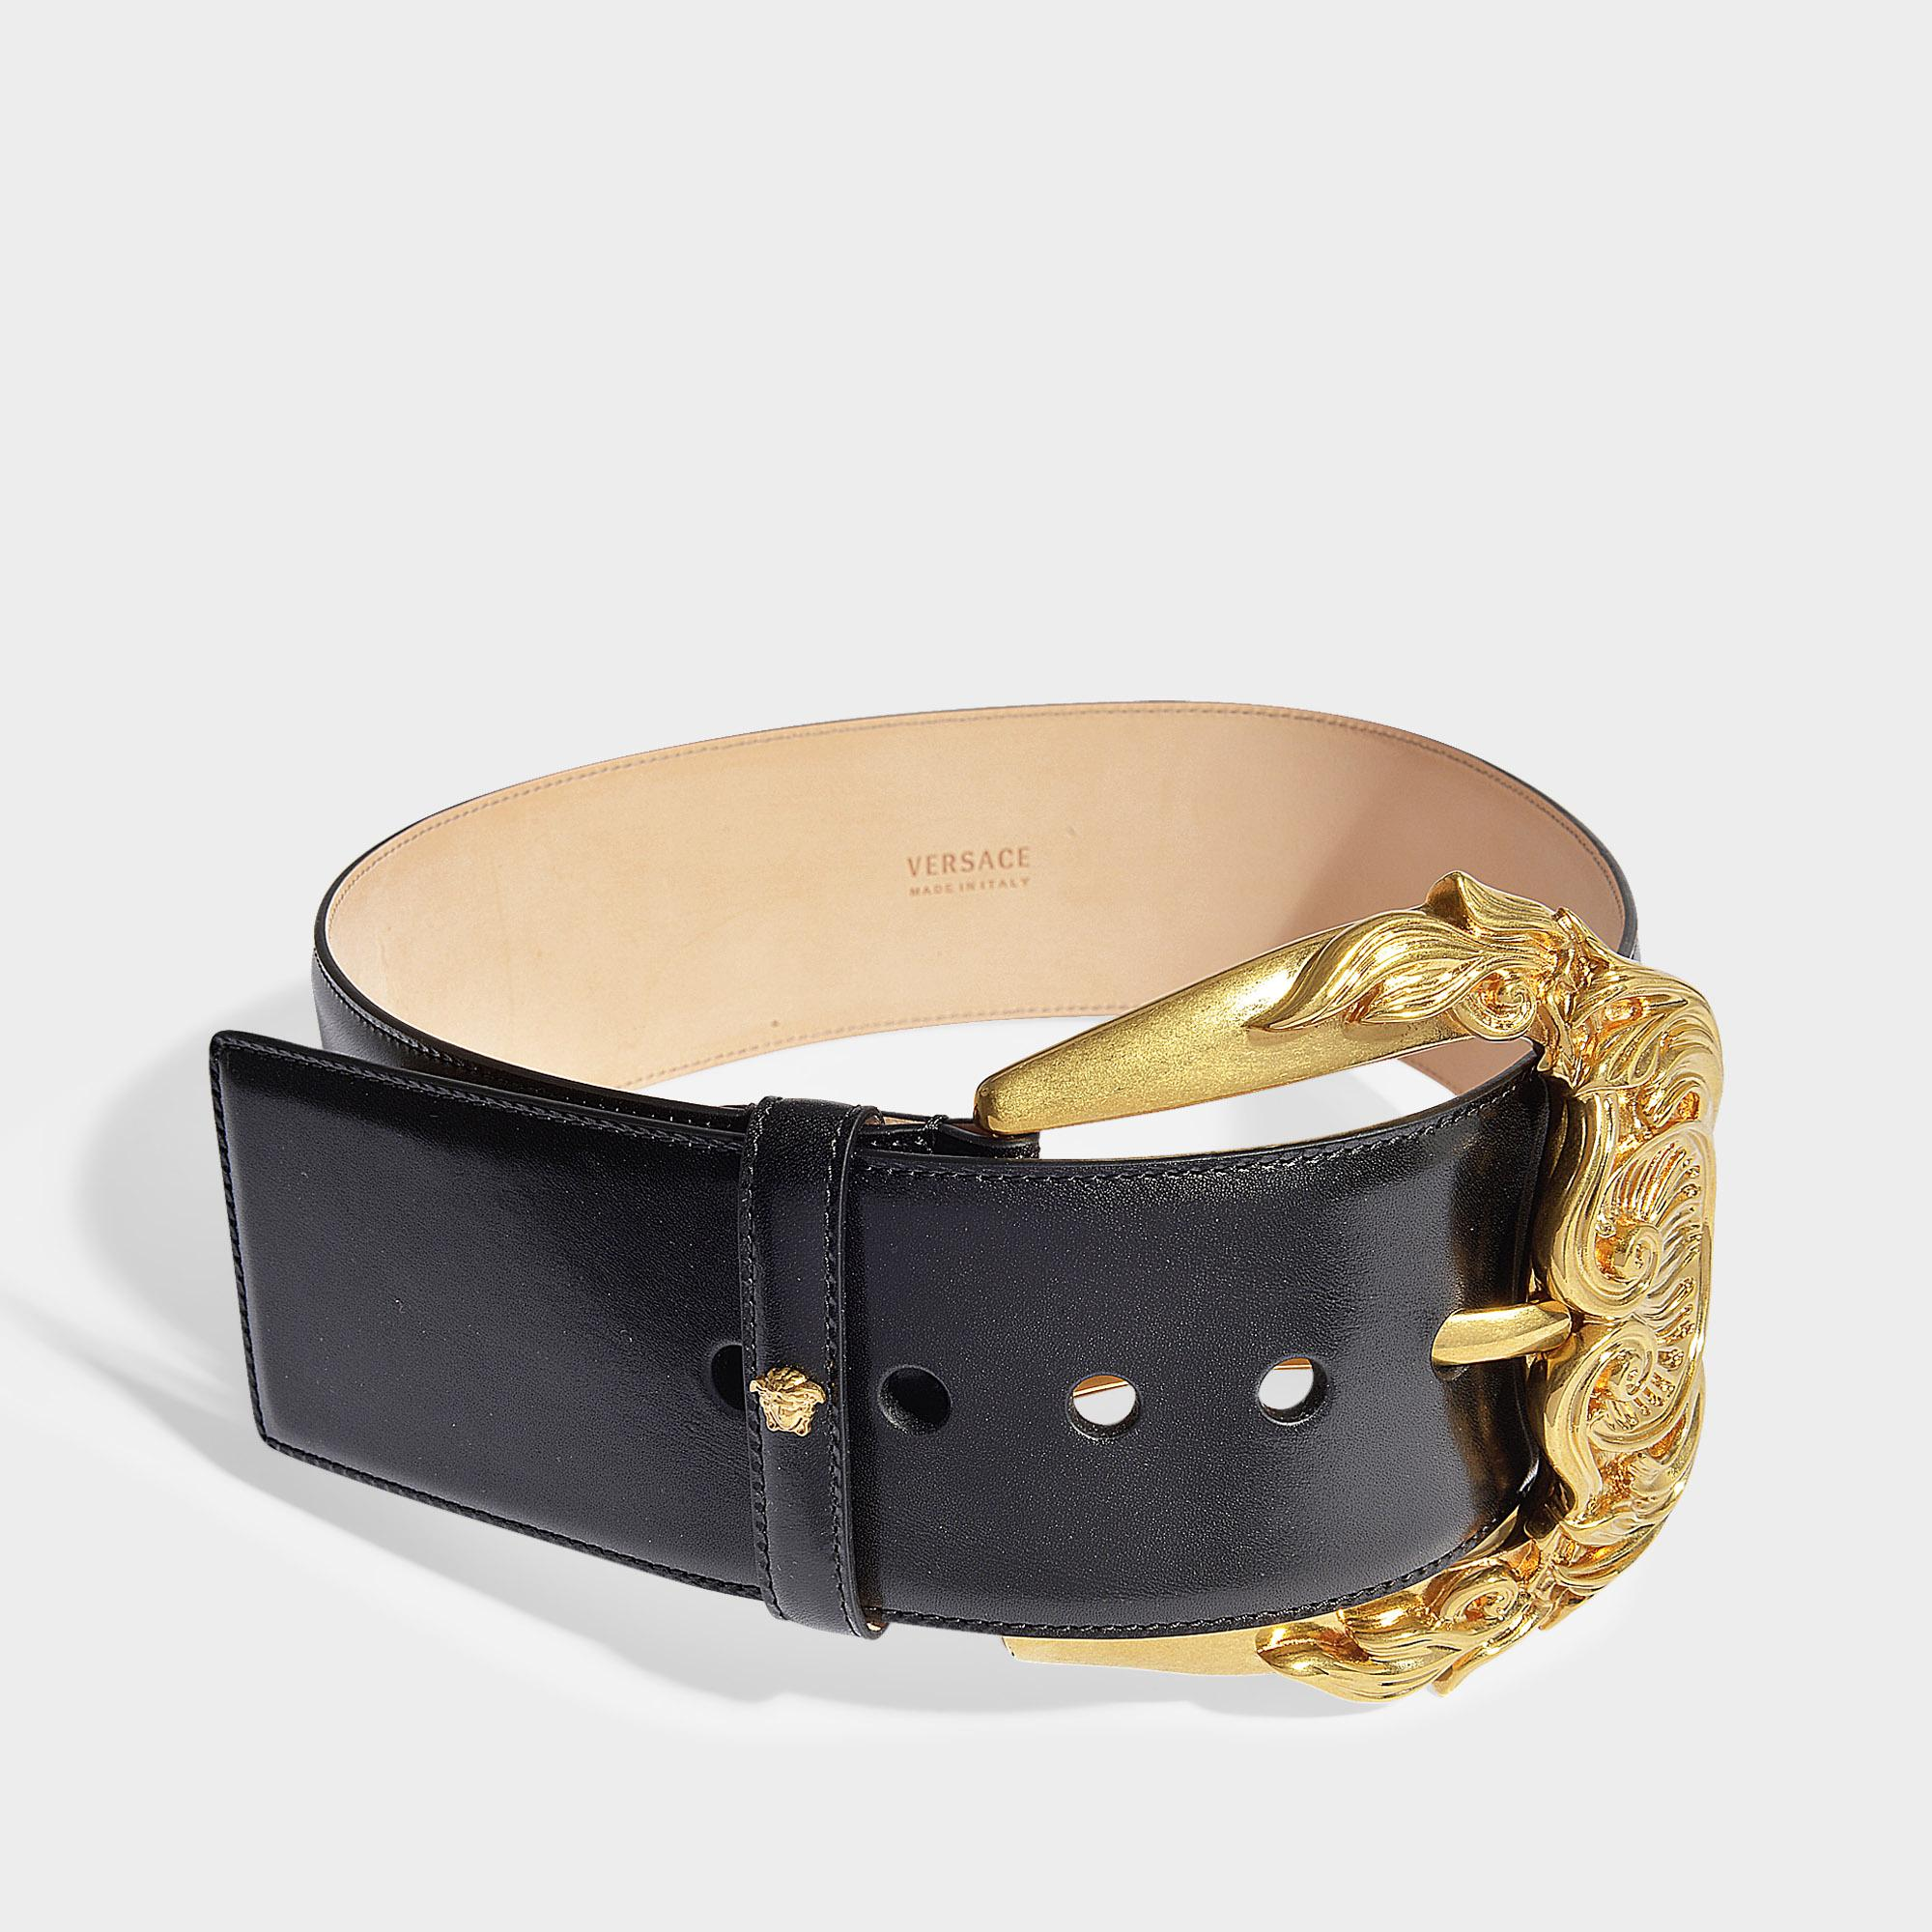 62652f25f Versace - Barocco Buckle Waist Belt In Black Calf Leather - Lyst. View  fullscreen